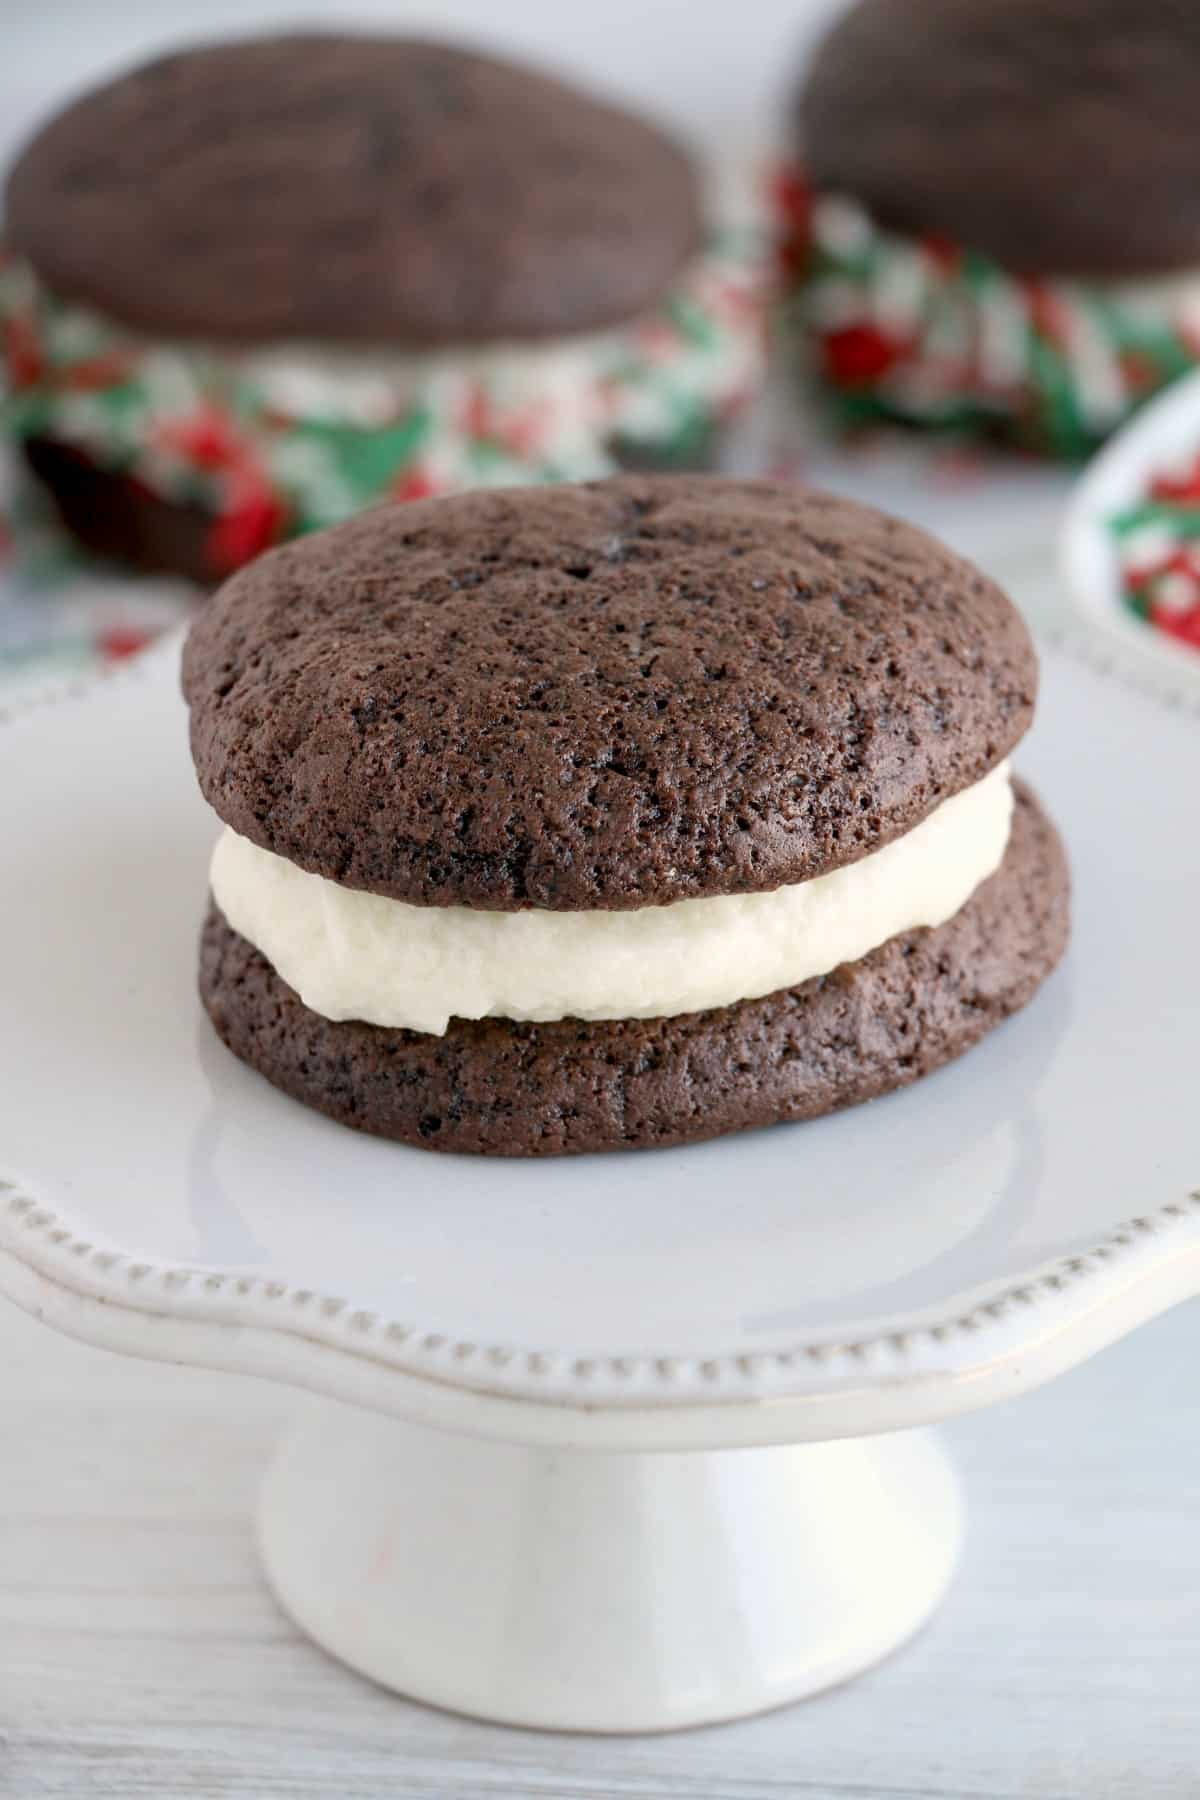 Chocolate whoopie pie with cream filling on small cake stand.